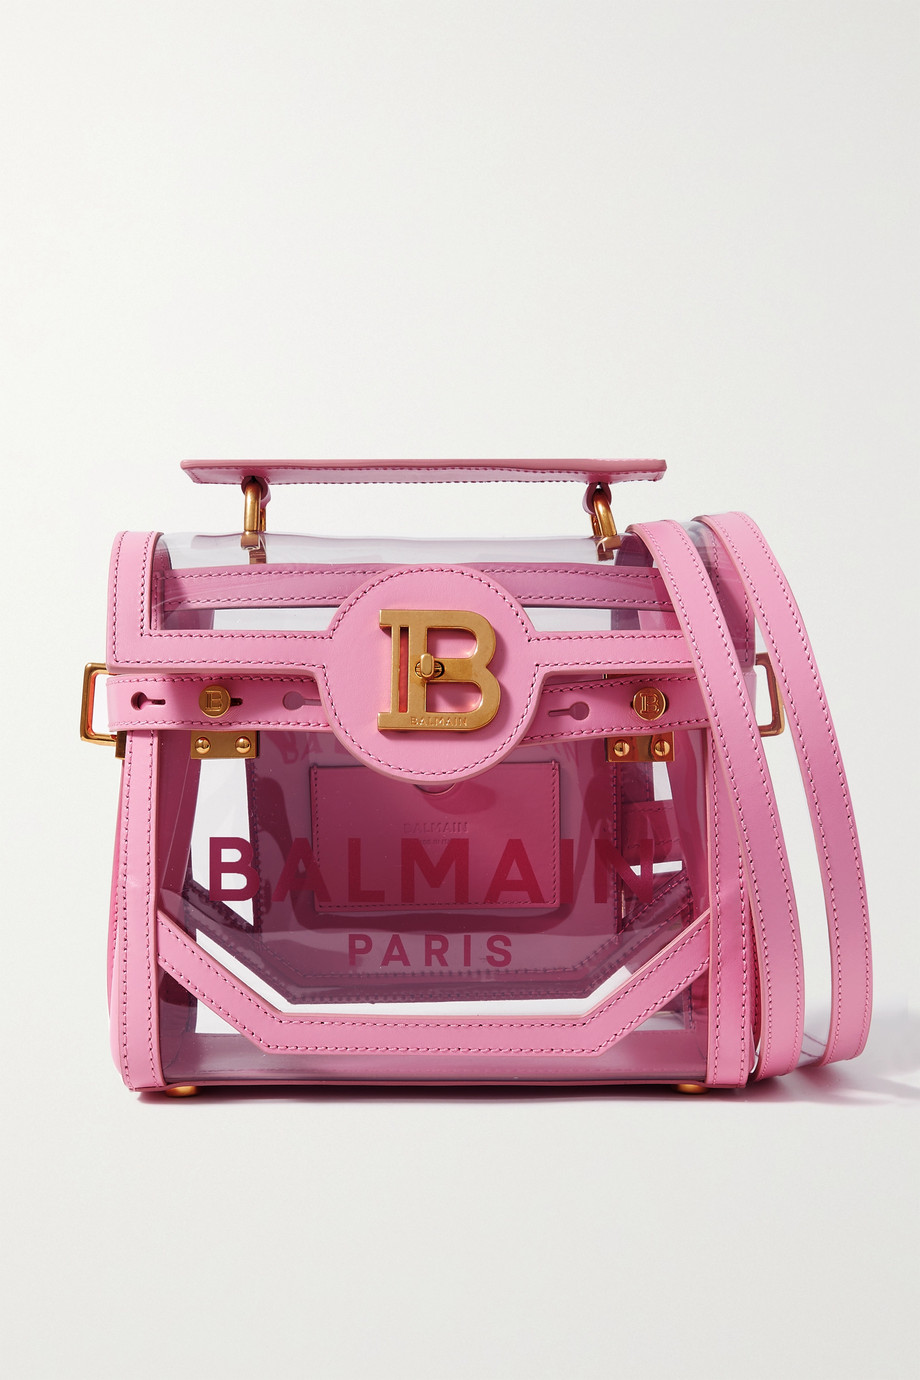 Balmain B-Buzz 23 leather and printed PVC shoulder bag